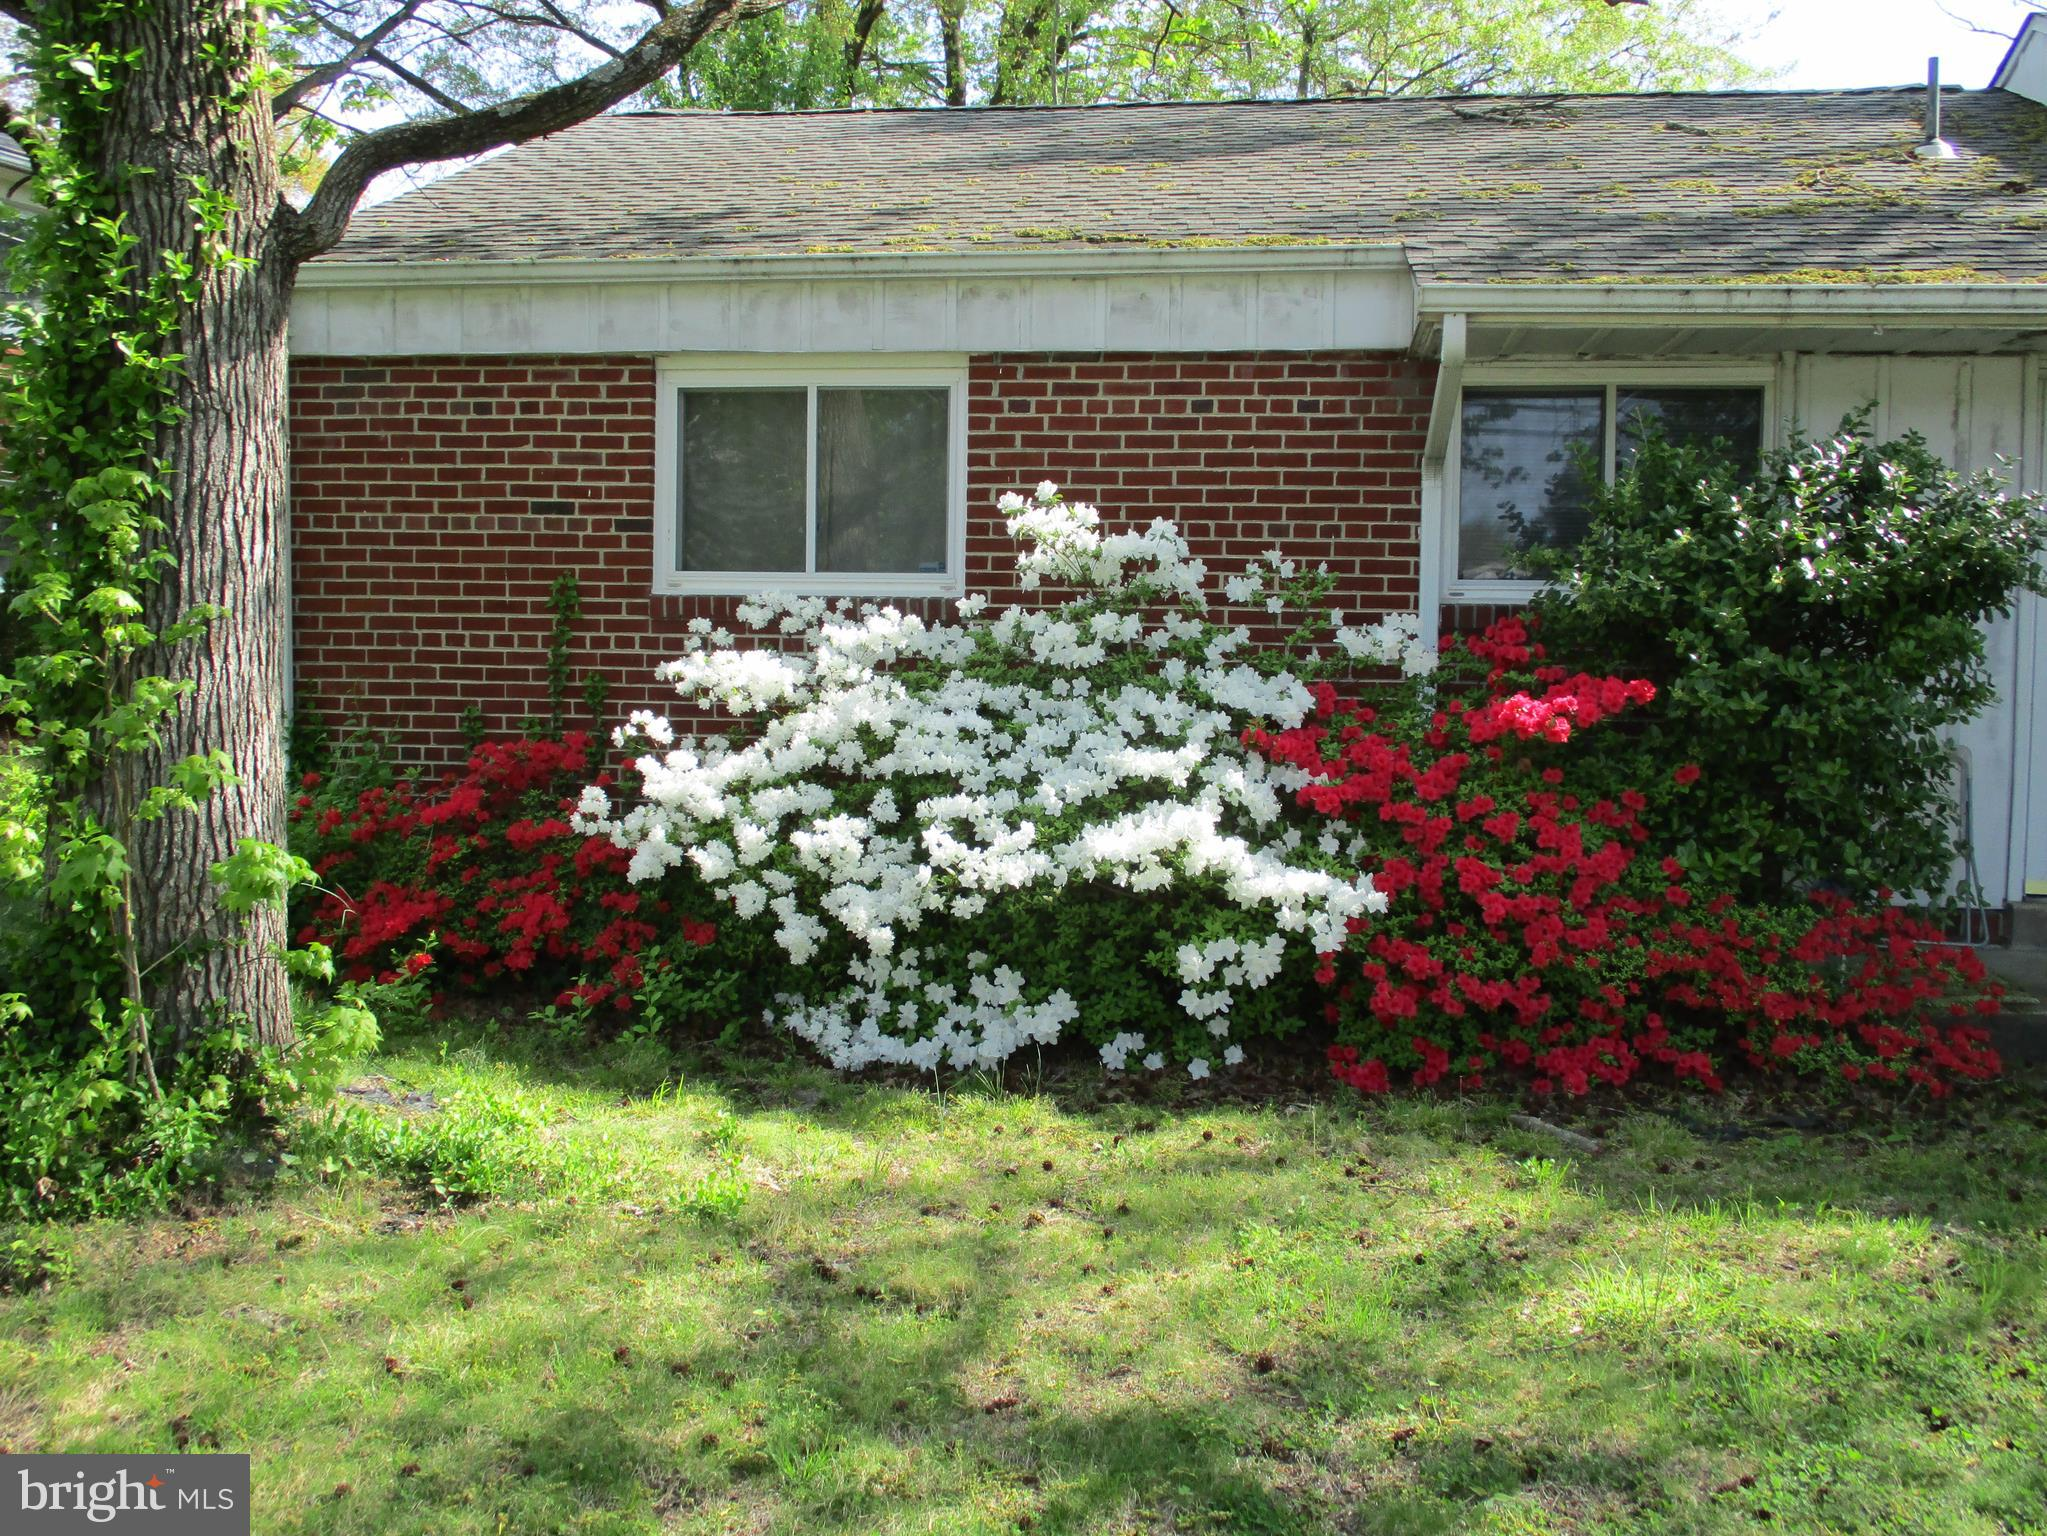 6701 FOREST HILL DRIVE, UNIVERSITY PARK, MD 20782